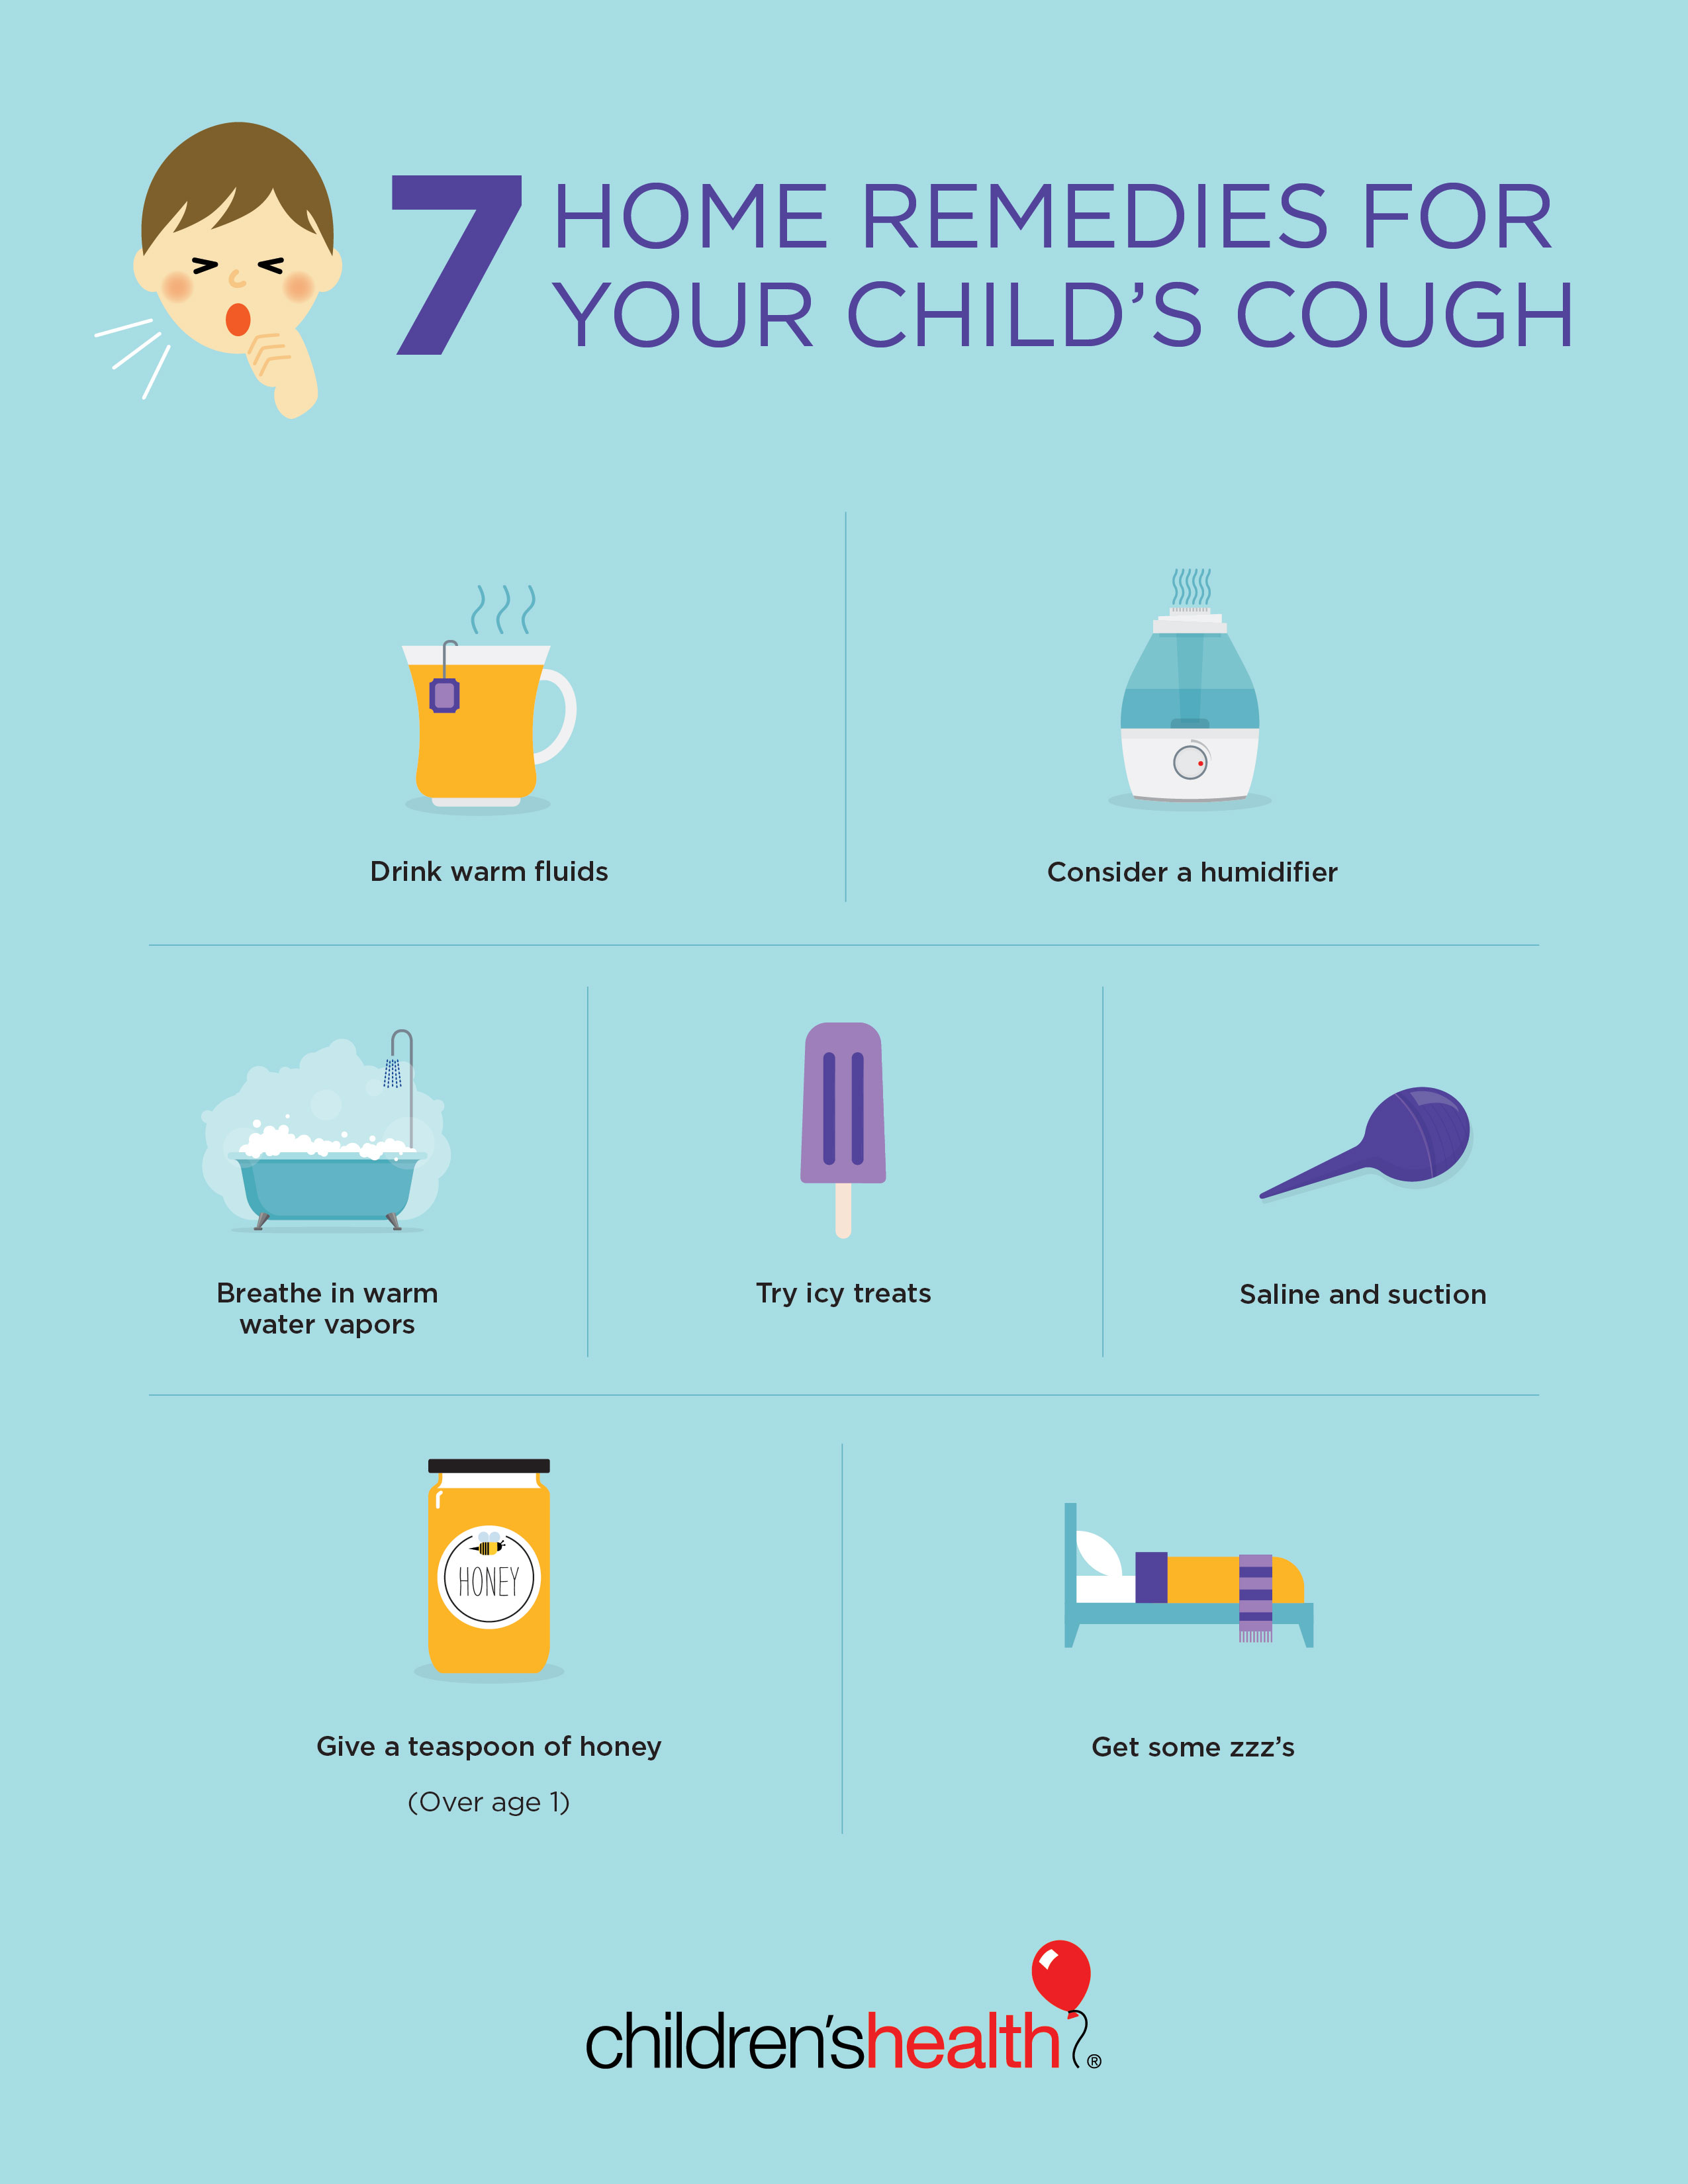 Home remedies for cough in kids - Children's Health